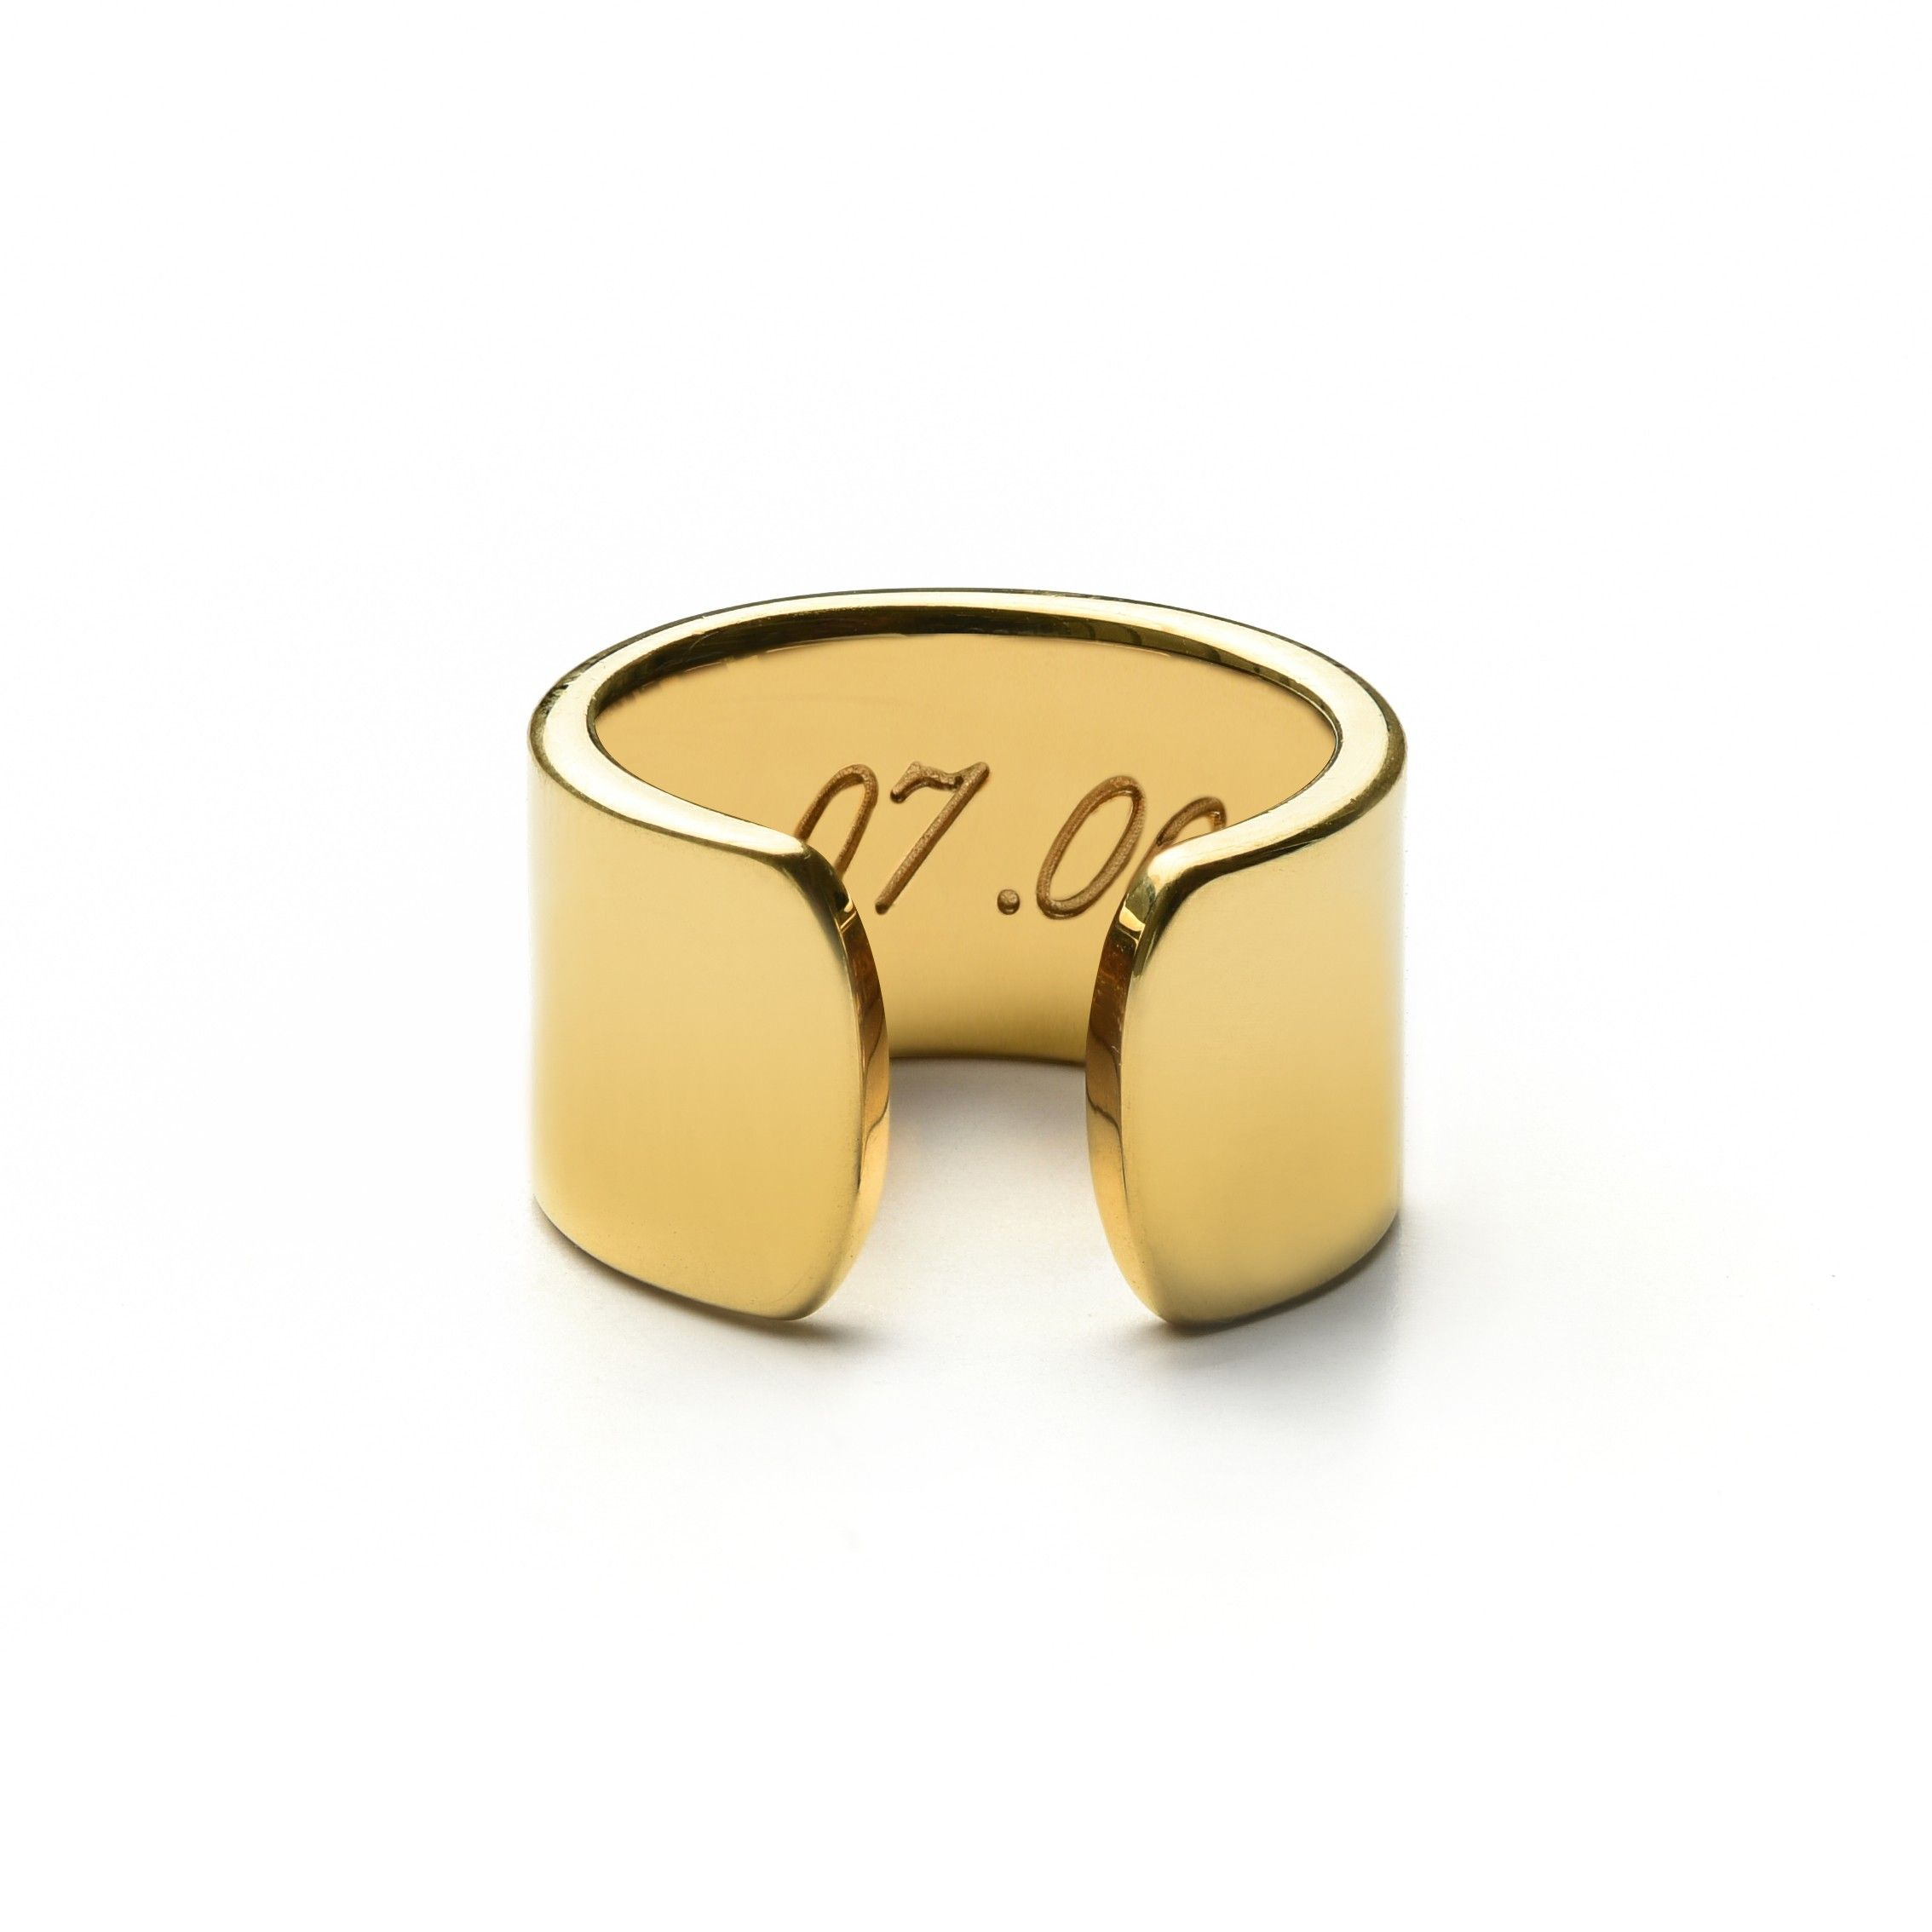 The horizon ring is a thick cuffed ring it is a bold and sleek